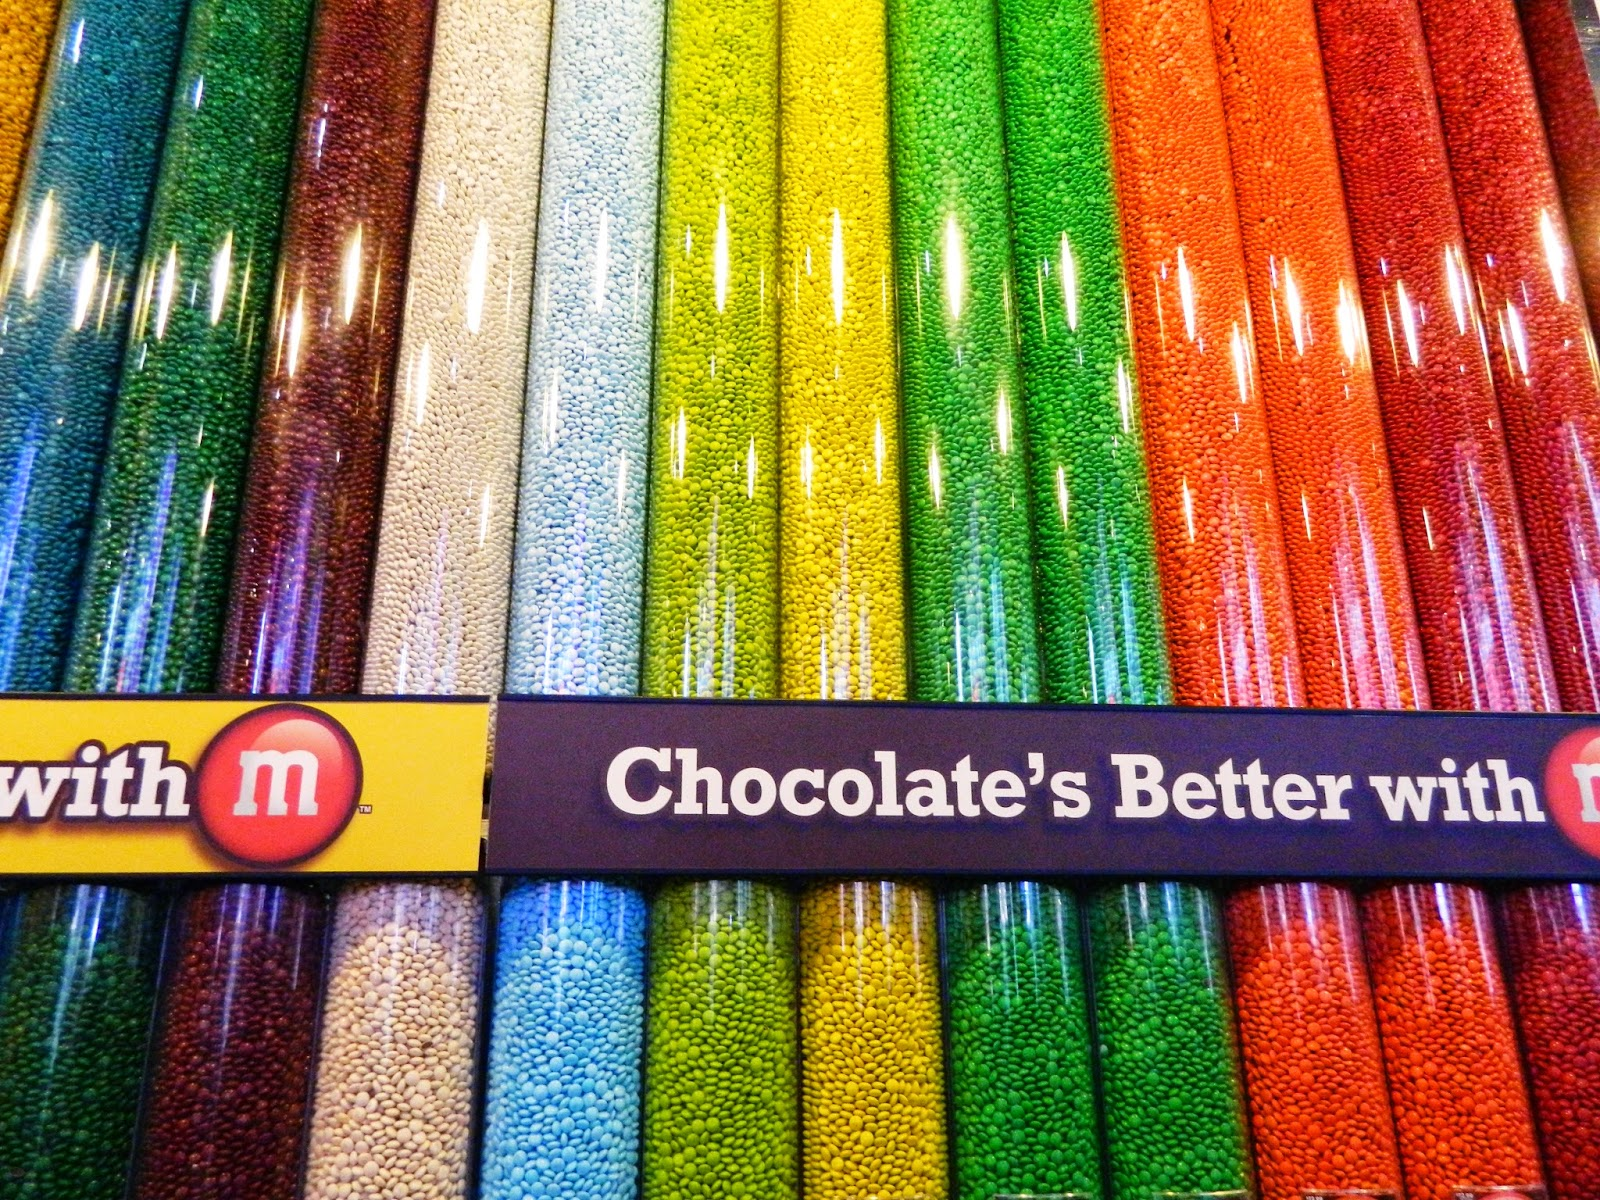 new york city m&ms world sweets chocolate colourful pick and mix bags times square shop